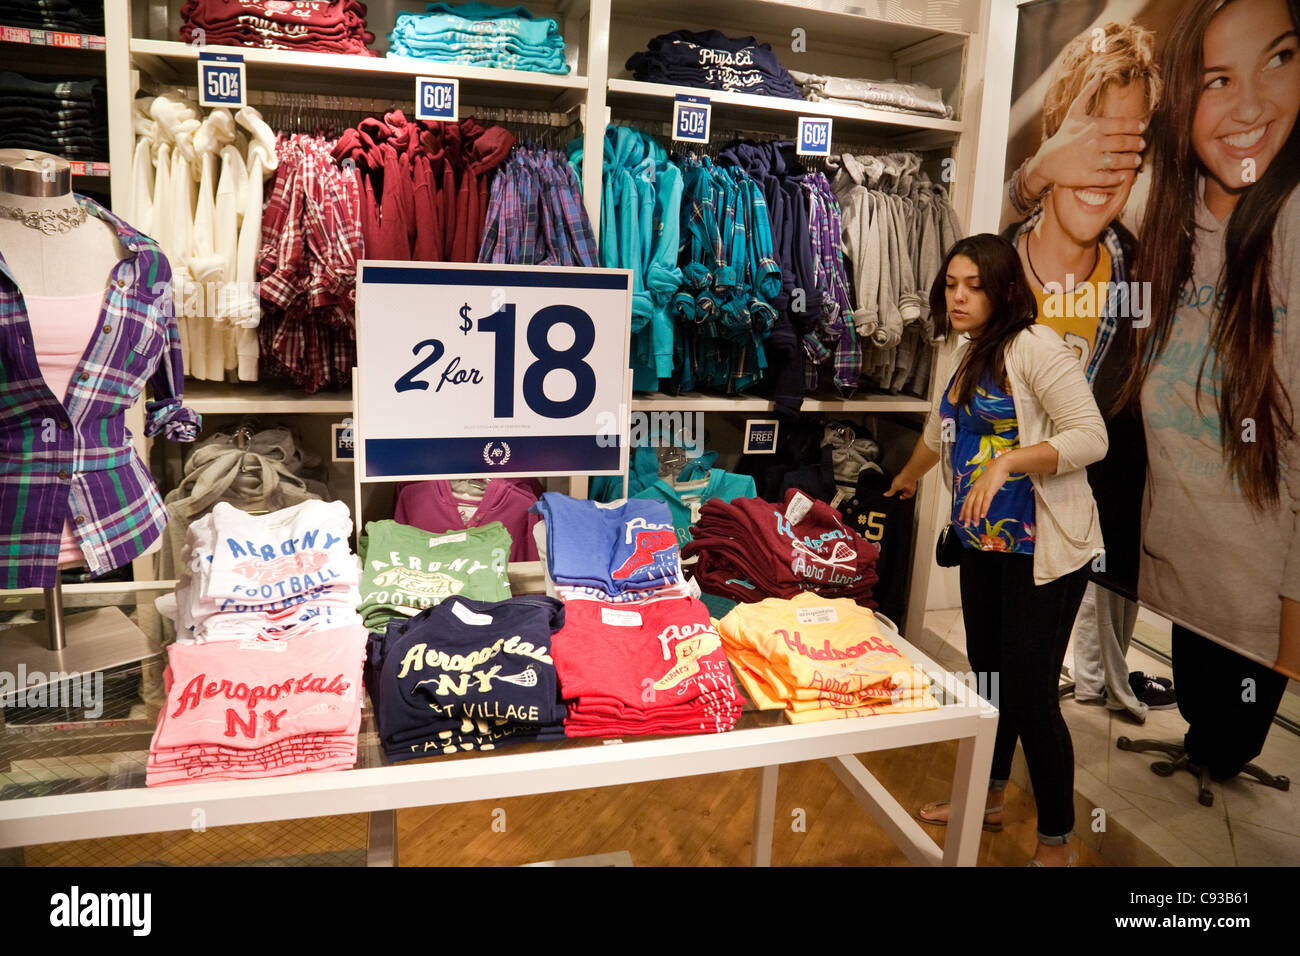 Urban Outfitters Urban Outfitters is a #1 shopping destination for a lot of teens. Not only for the clothing but for the bedroom decor. Not only for the clothing but for the bedroom decor. Teenage girls thru college age love the retro styles and vintage revivals.